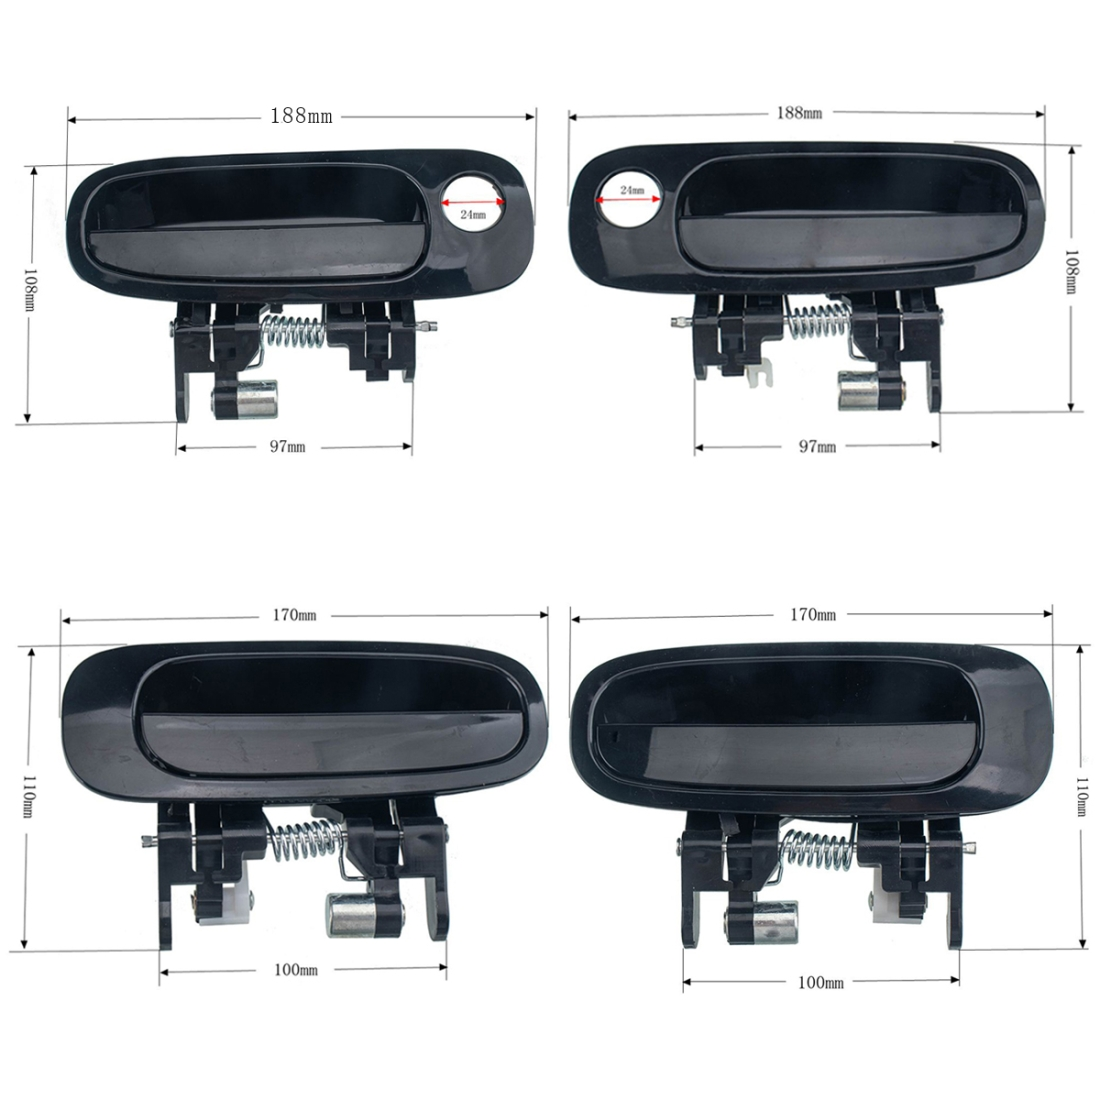 4 PCS Car Door Outside Handle 6922/10-02030+6924/30-02040 for Toyota Corolla 1998-2002 with Tool Kit